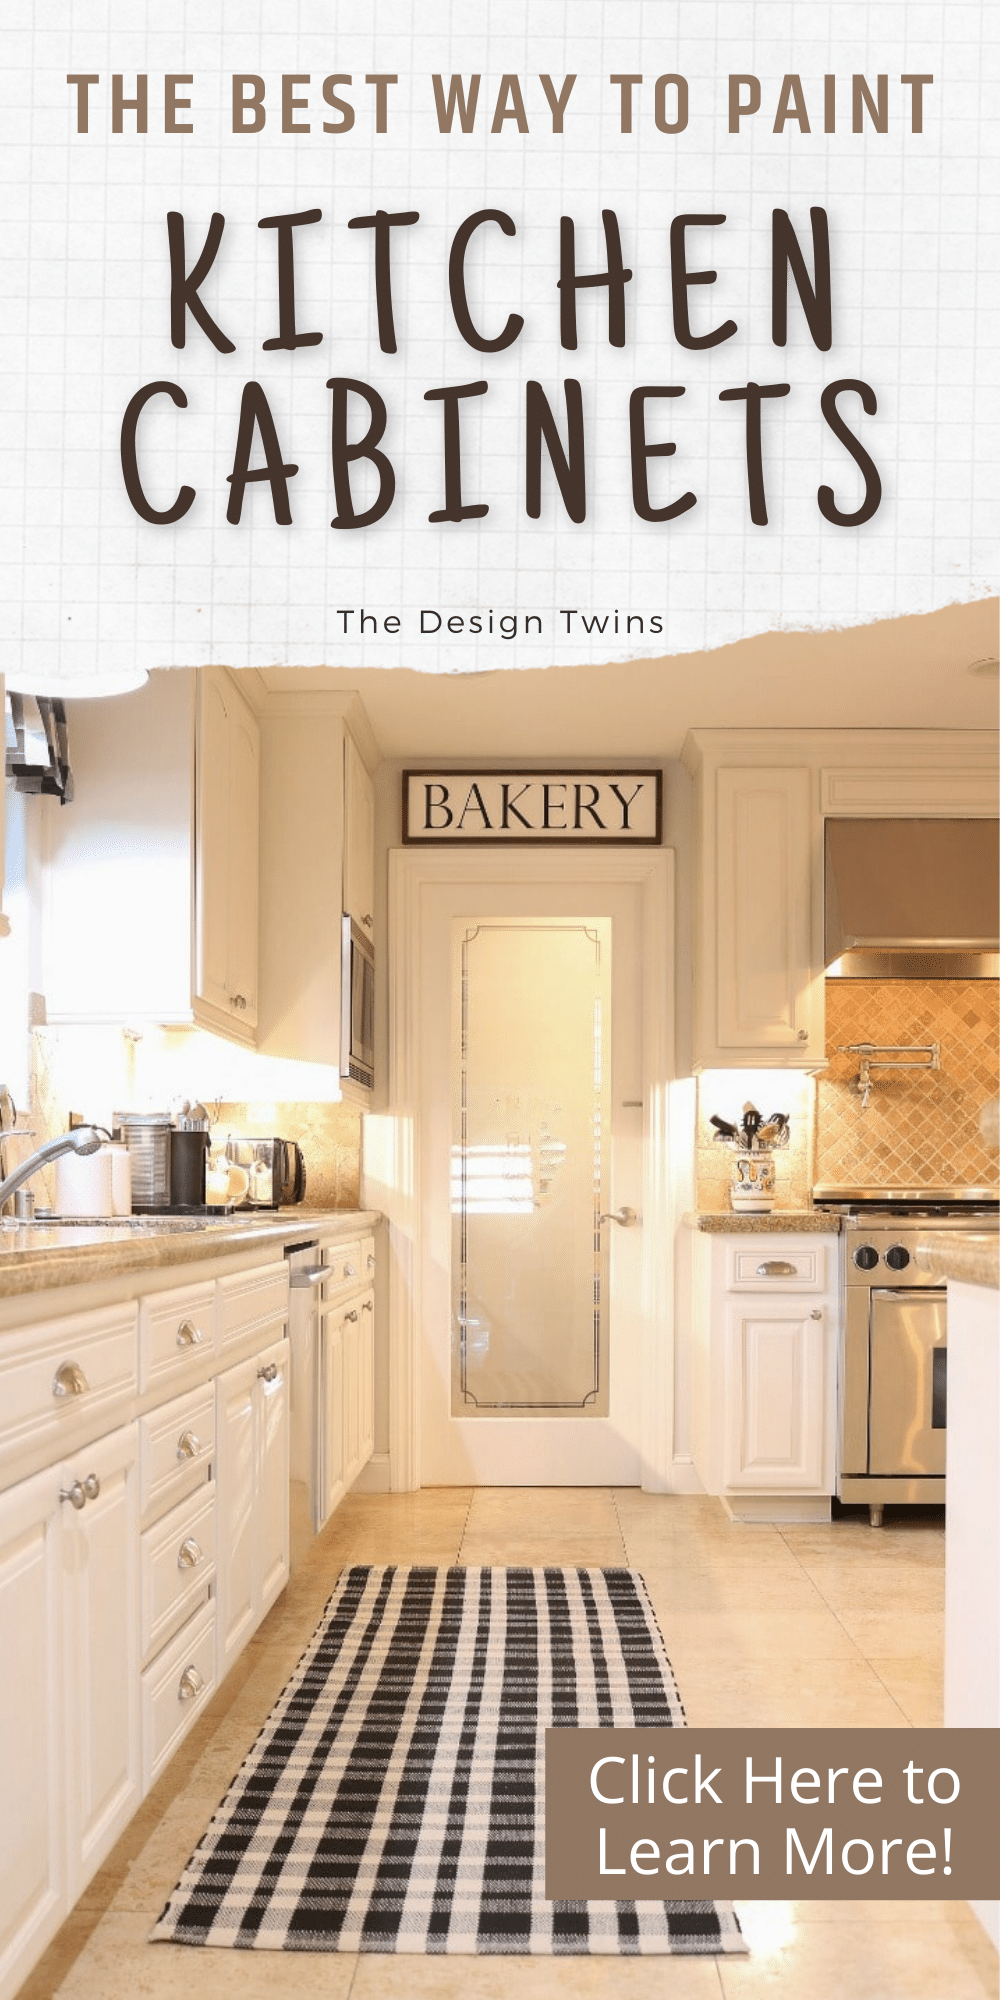 Step By Step How To Paint Kitchen Cabinets Side By Side Comparison Of Mineral Paint Vs Acrylic Paint In 2020 Kitchen Paint Kitchen Cabinets Painting Kitchen Cabinets